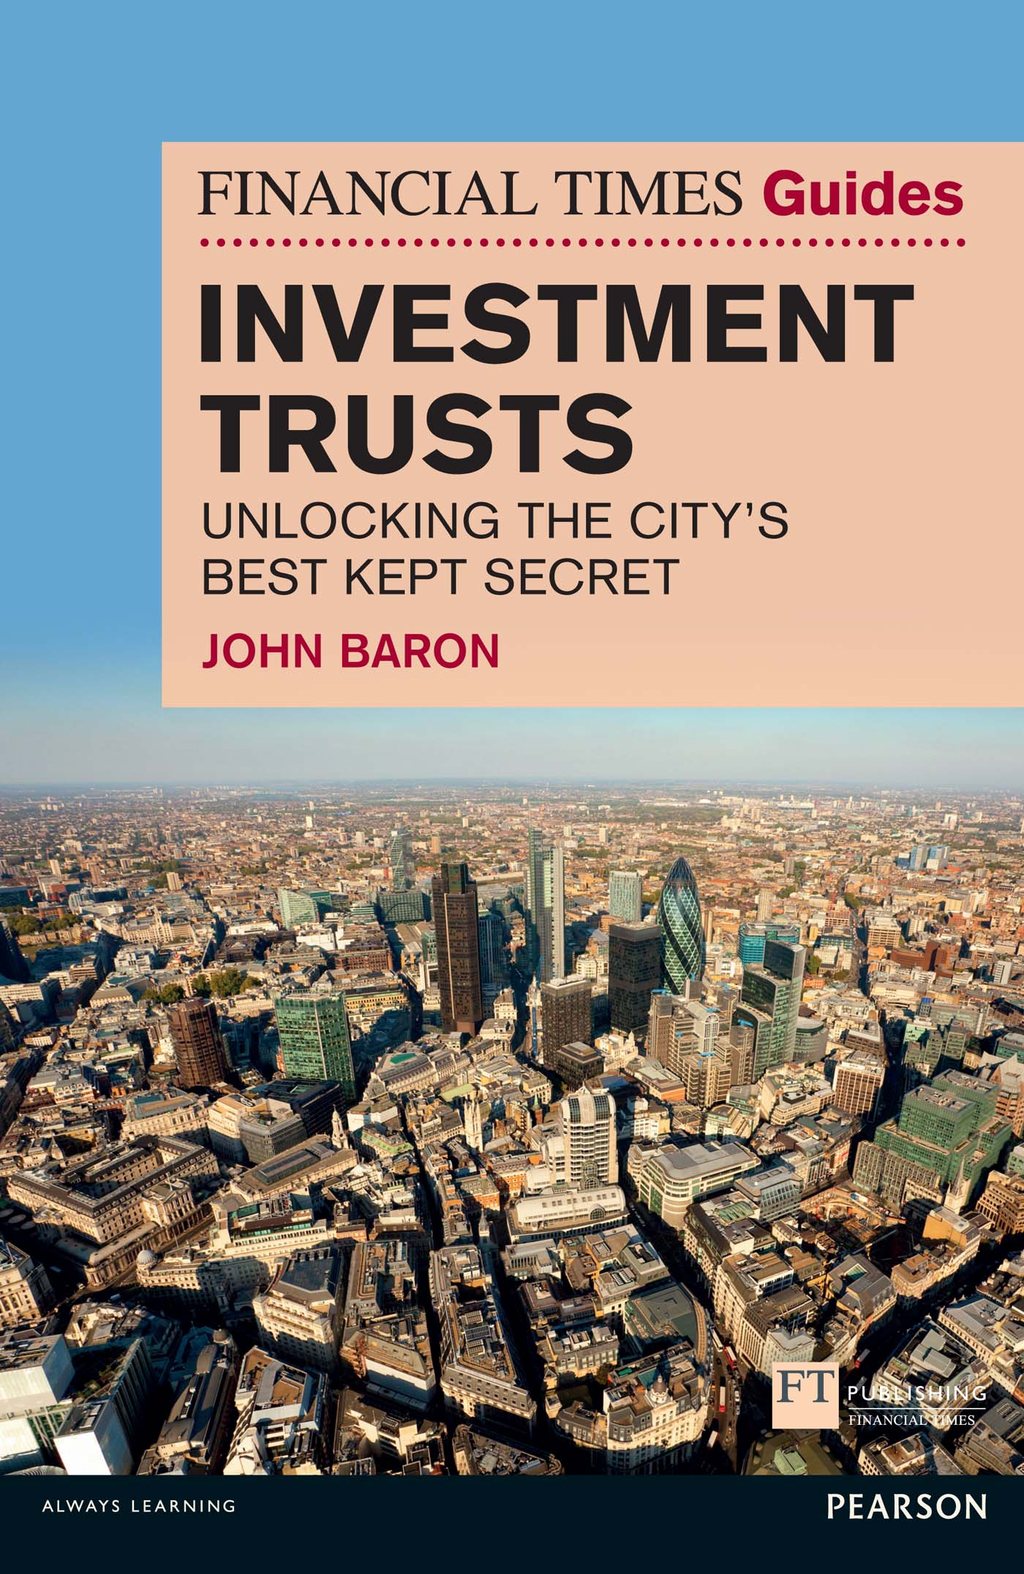 Financial Times Guide to Investment Trusts Unlocking the City's Best Kept Secret